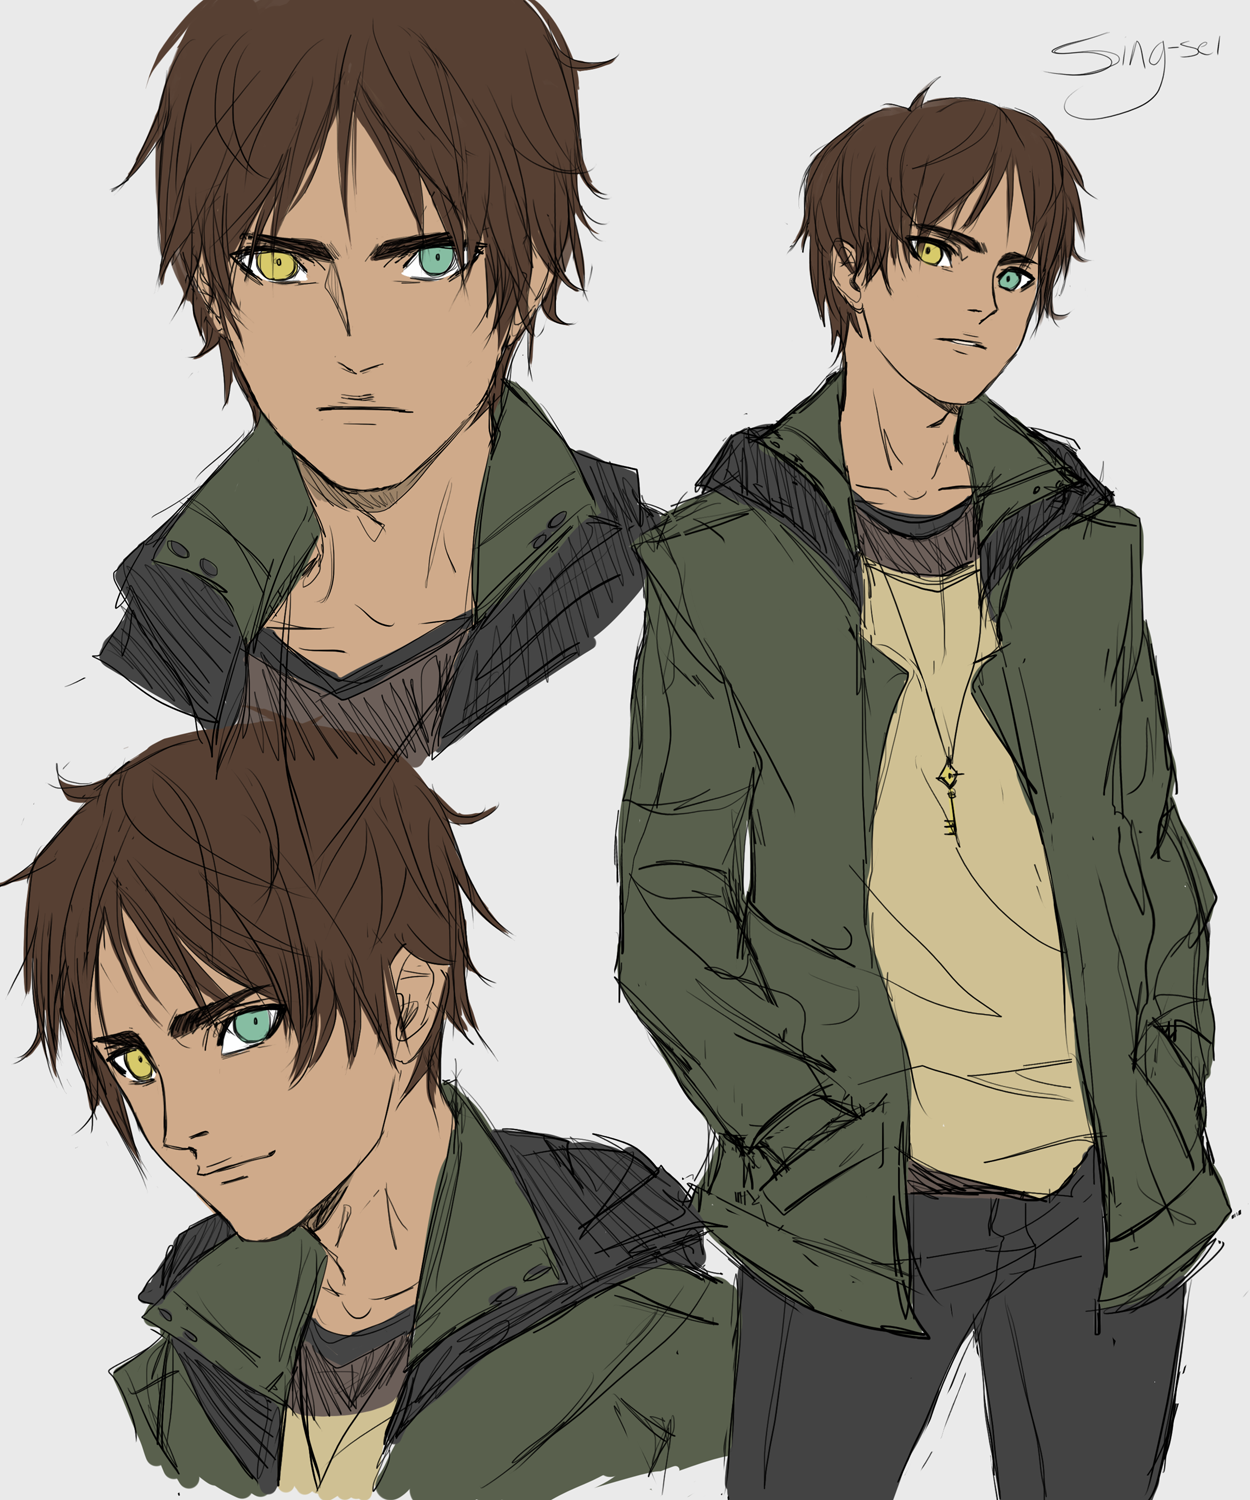 Eren design for an Attack on Titan zombie apocalypse AU with